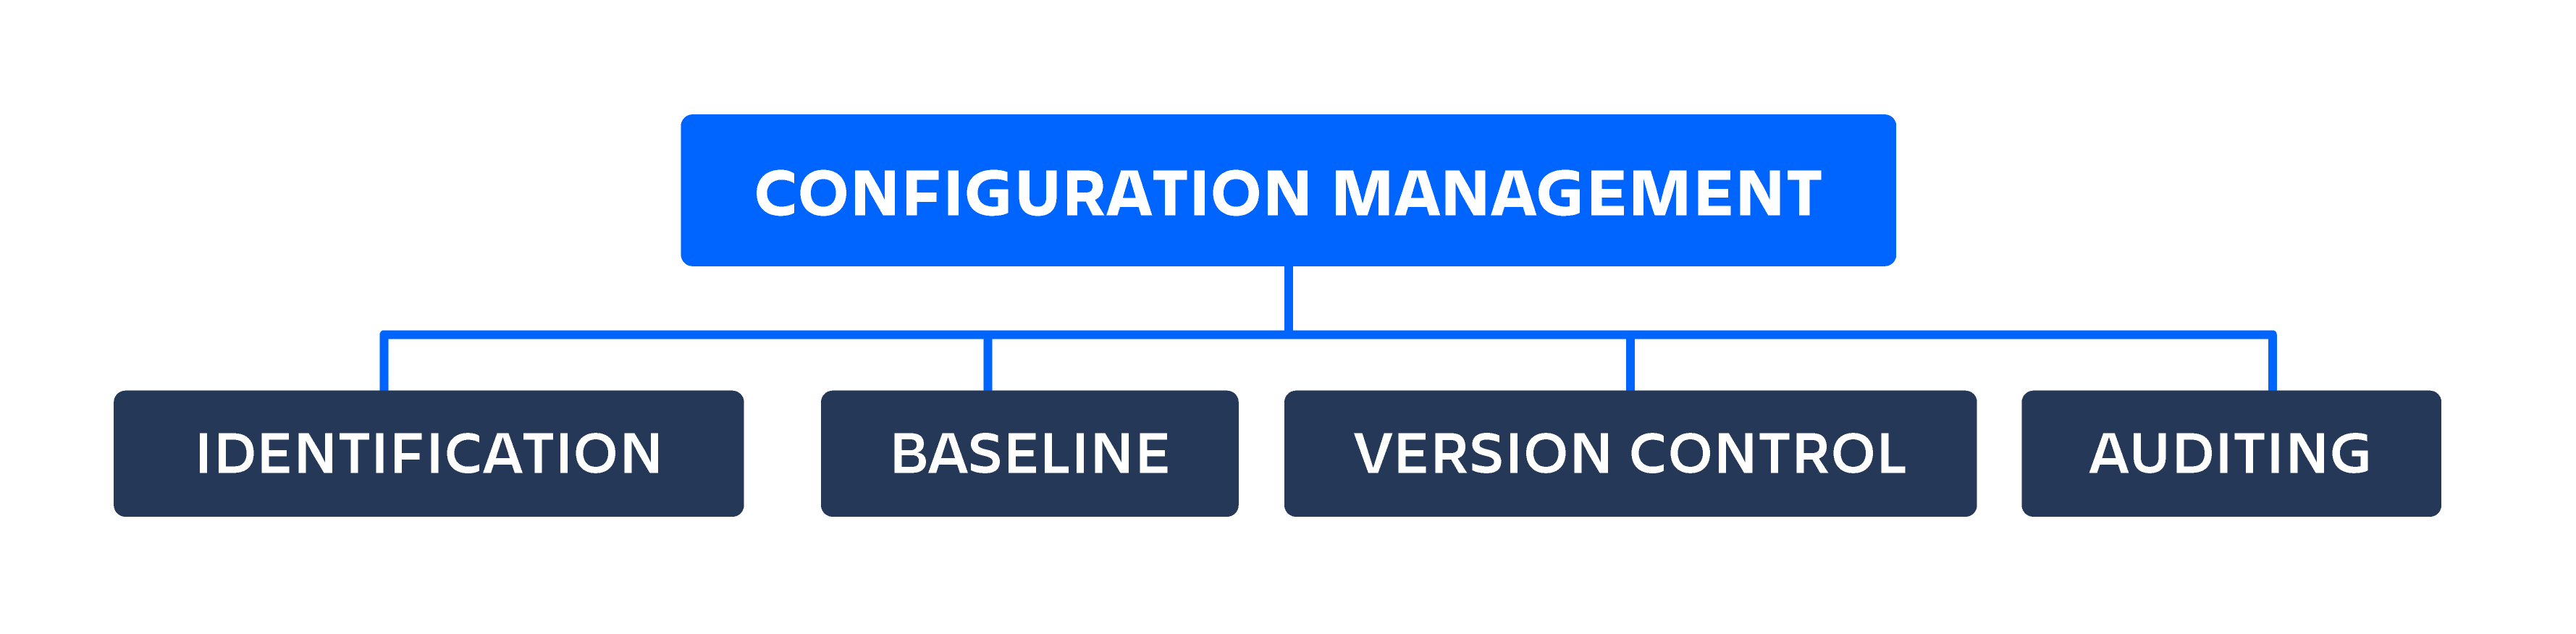 Configuration management diagram